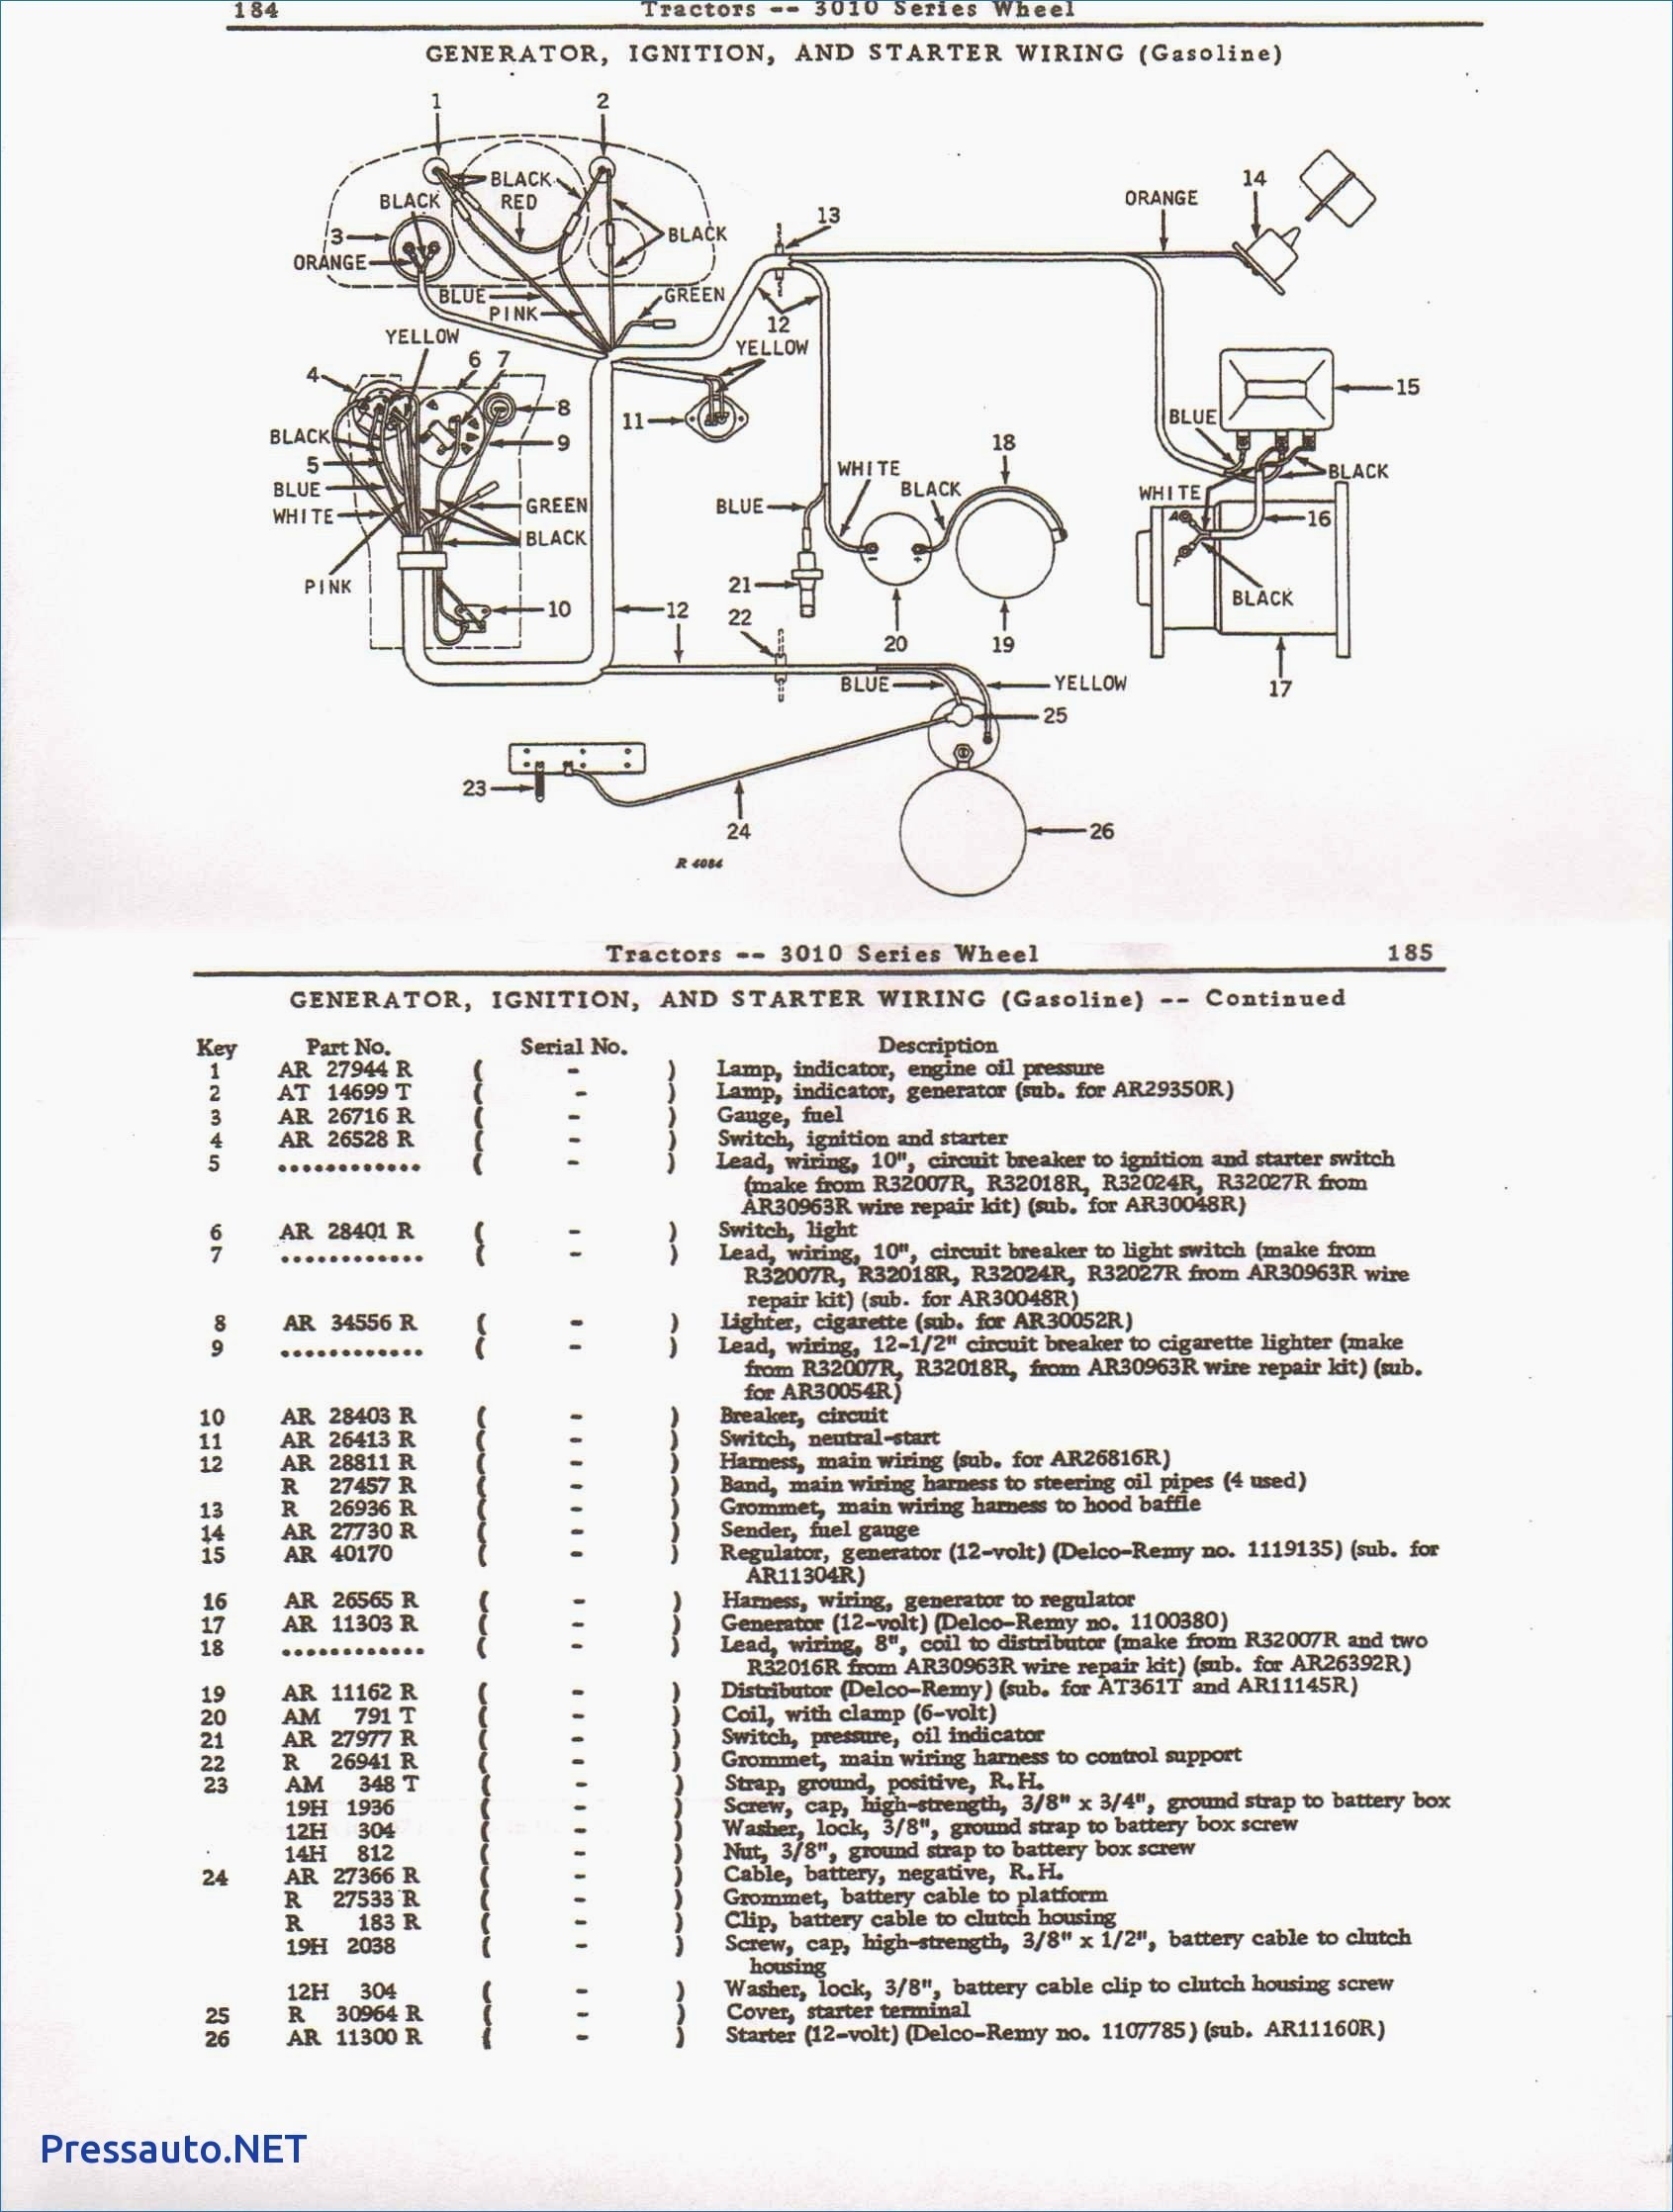 Jd 2355 Wiring Diagram - Wiring Data